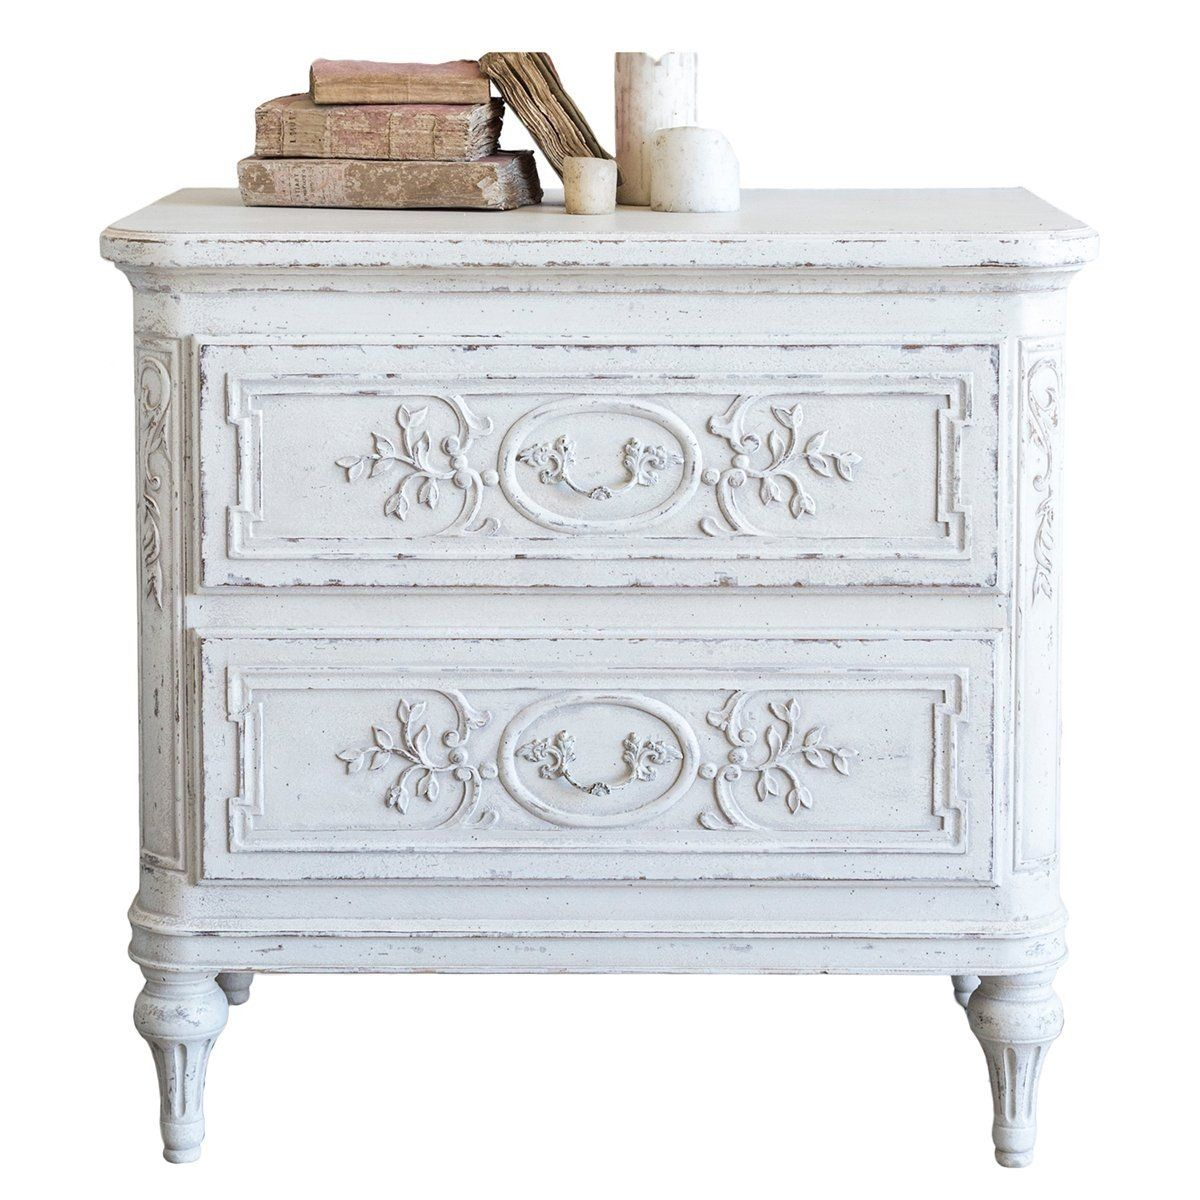 White Vintage French Nightstand Belle Escape Antique White Furniture Shabby Chic Furniture White Painted Furniture